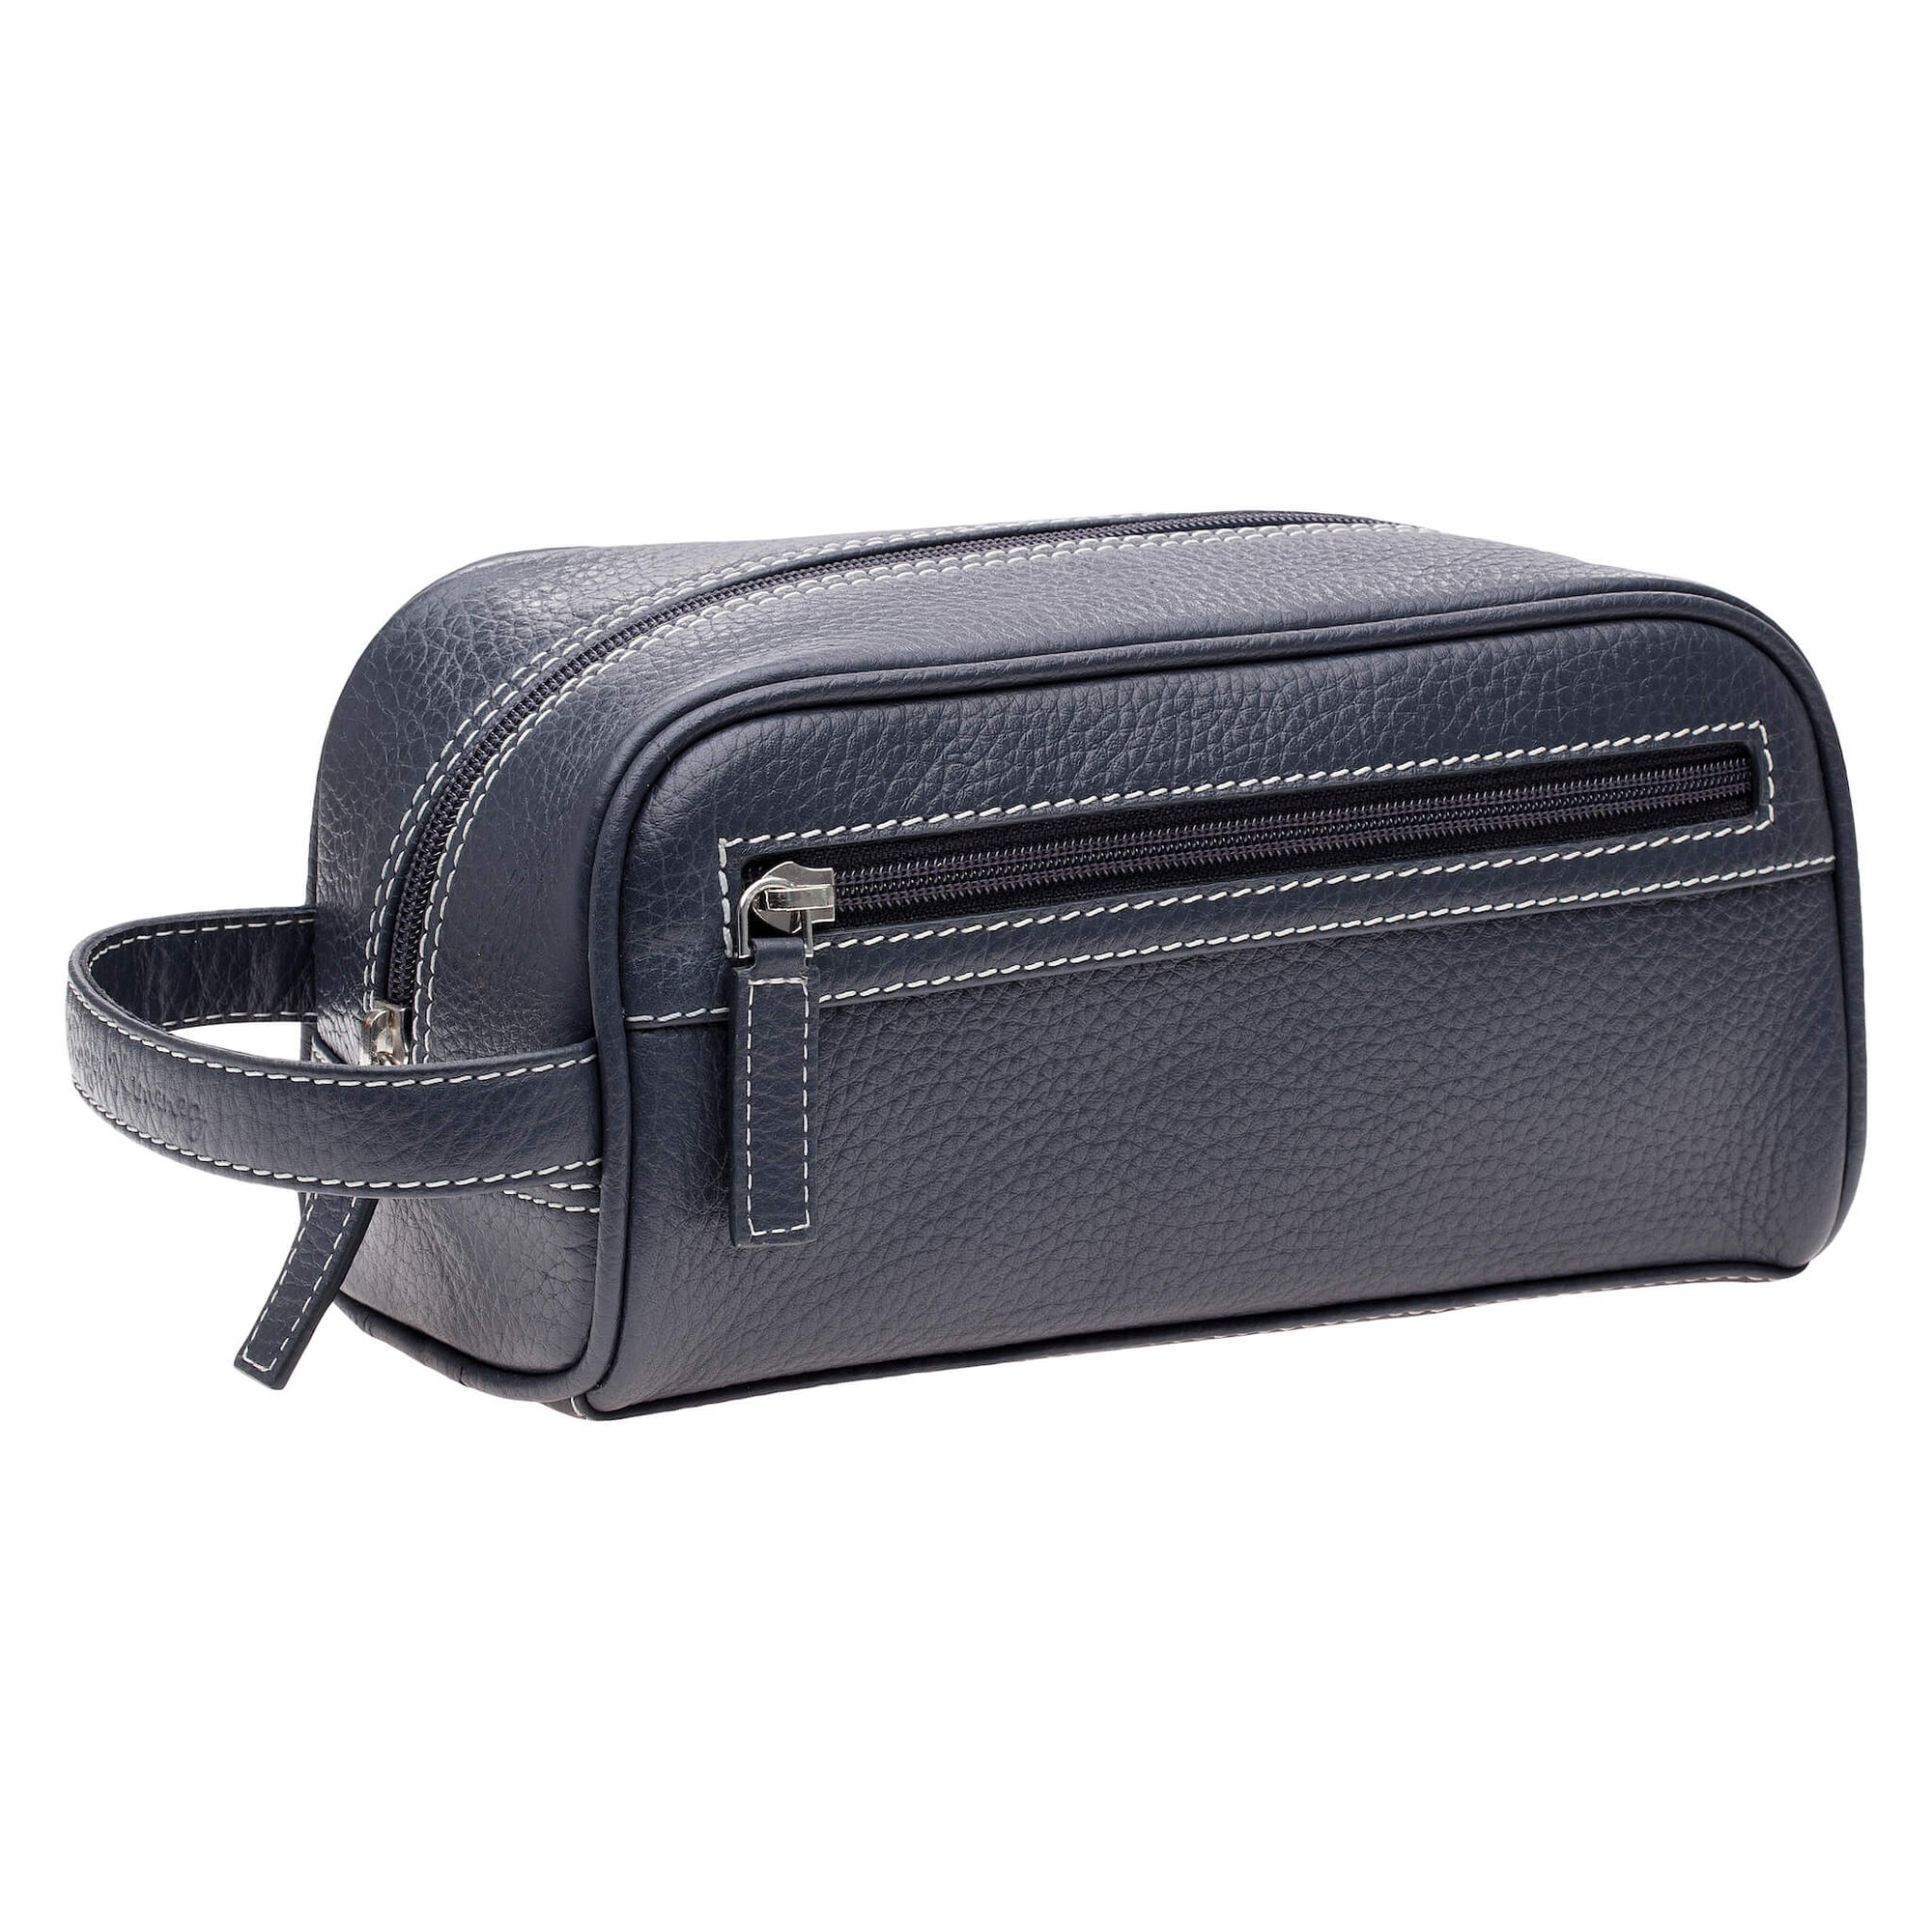 Navy Leather Toiletry Bag - White | Mens Fashion & Leather Goods by Roger Ximenez